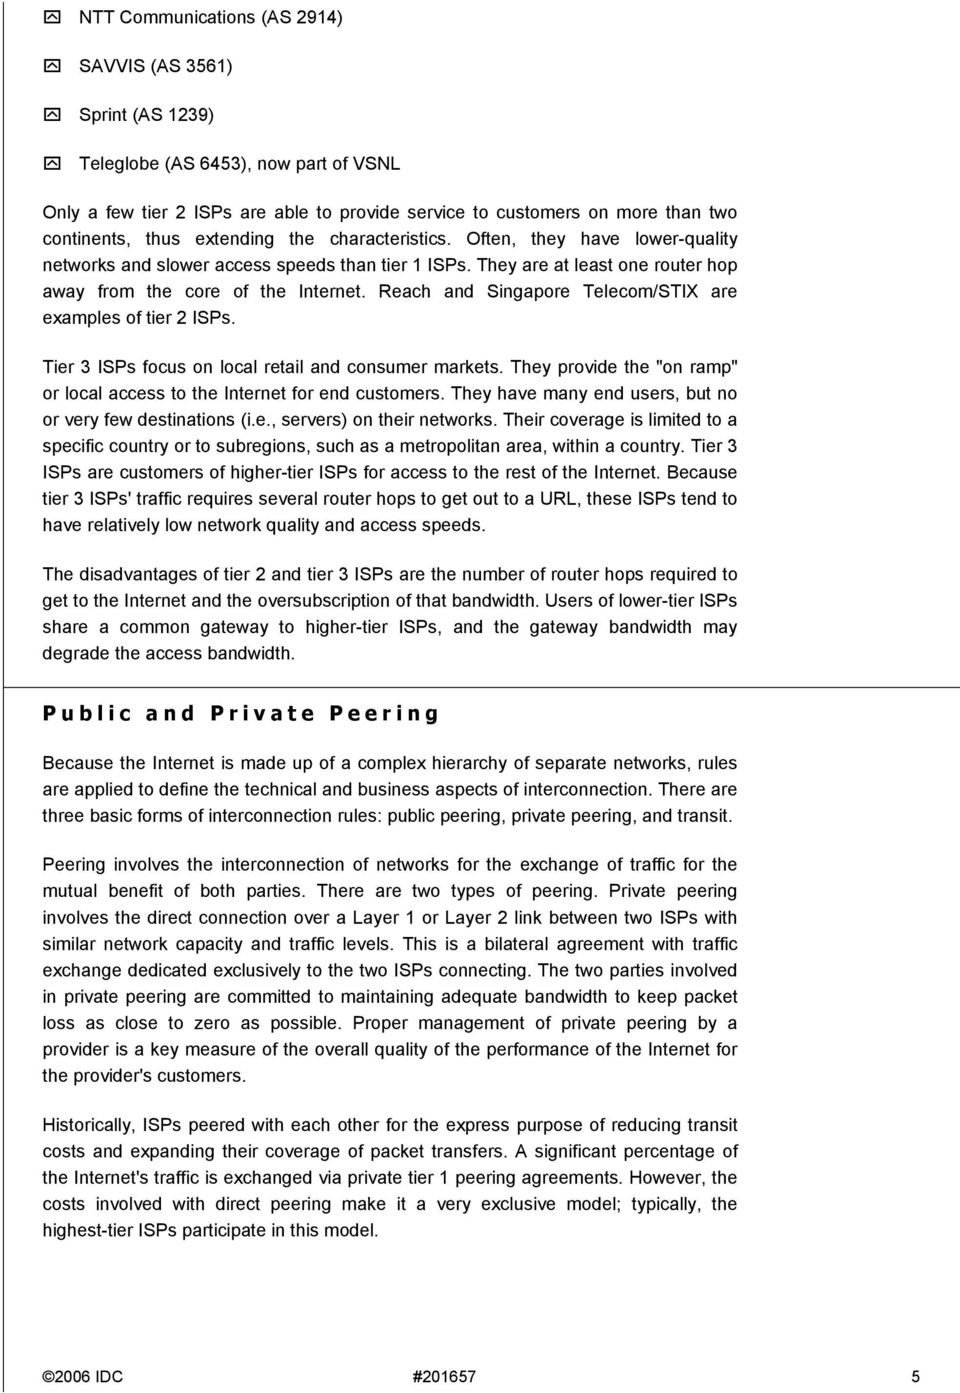 Often, they have lower-quality networks and slower access speeds than tier 1 s. They are at least one router hop away from the core of the Internet.